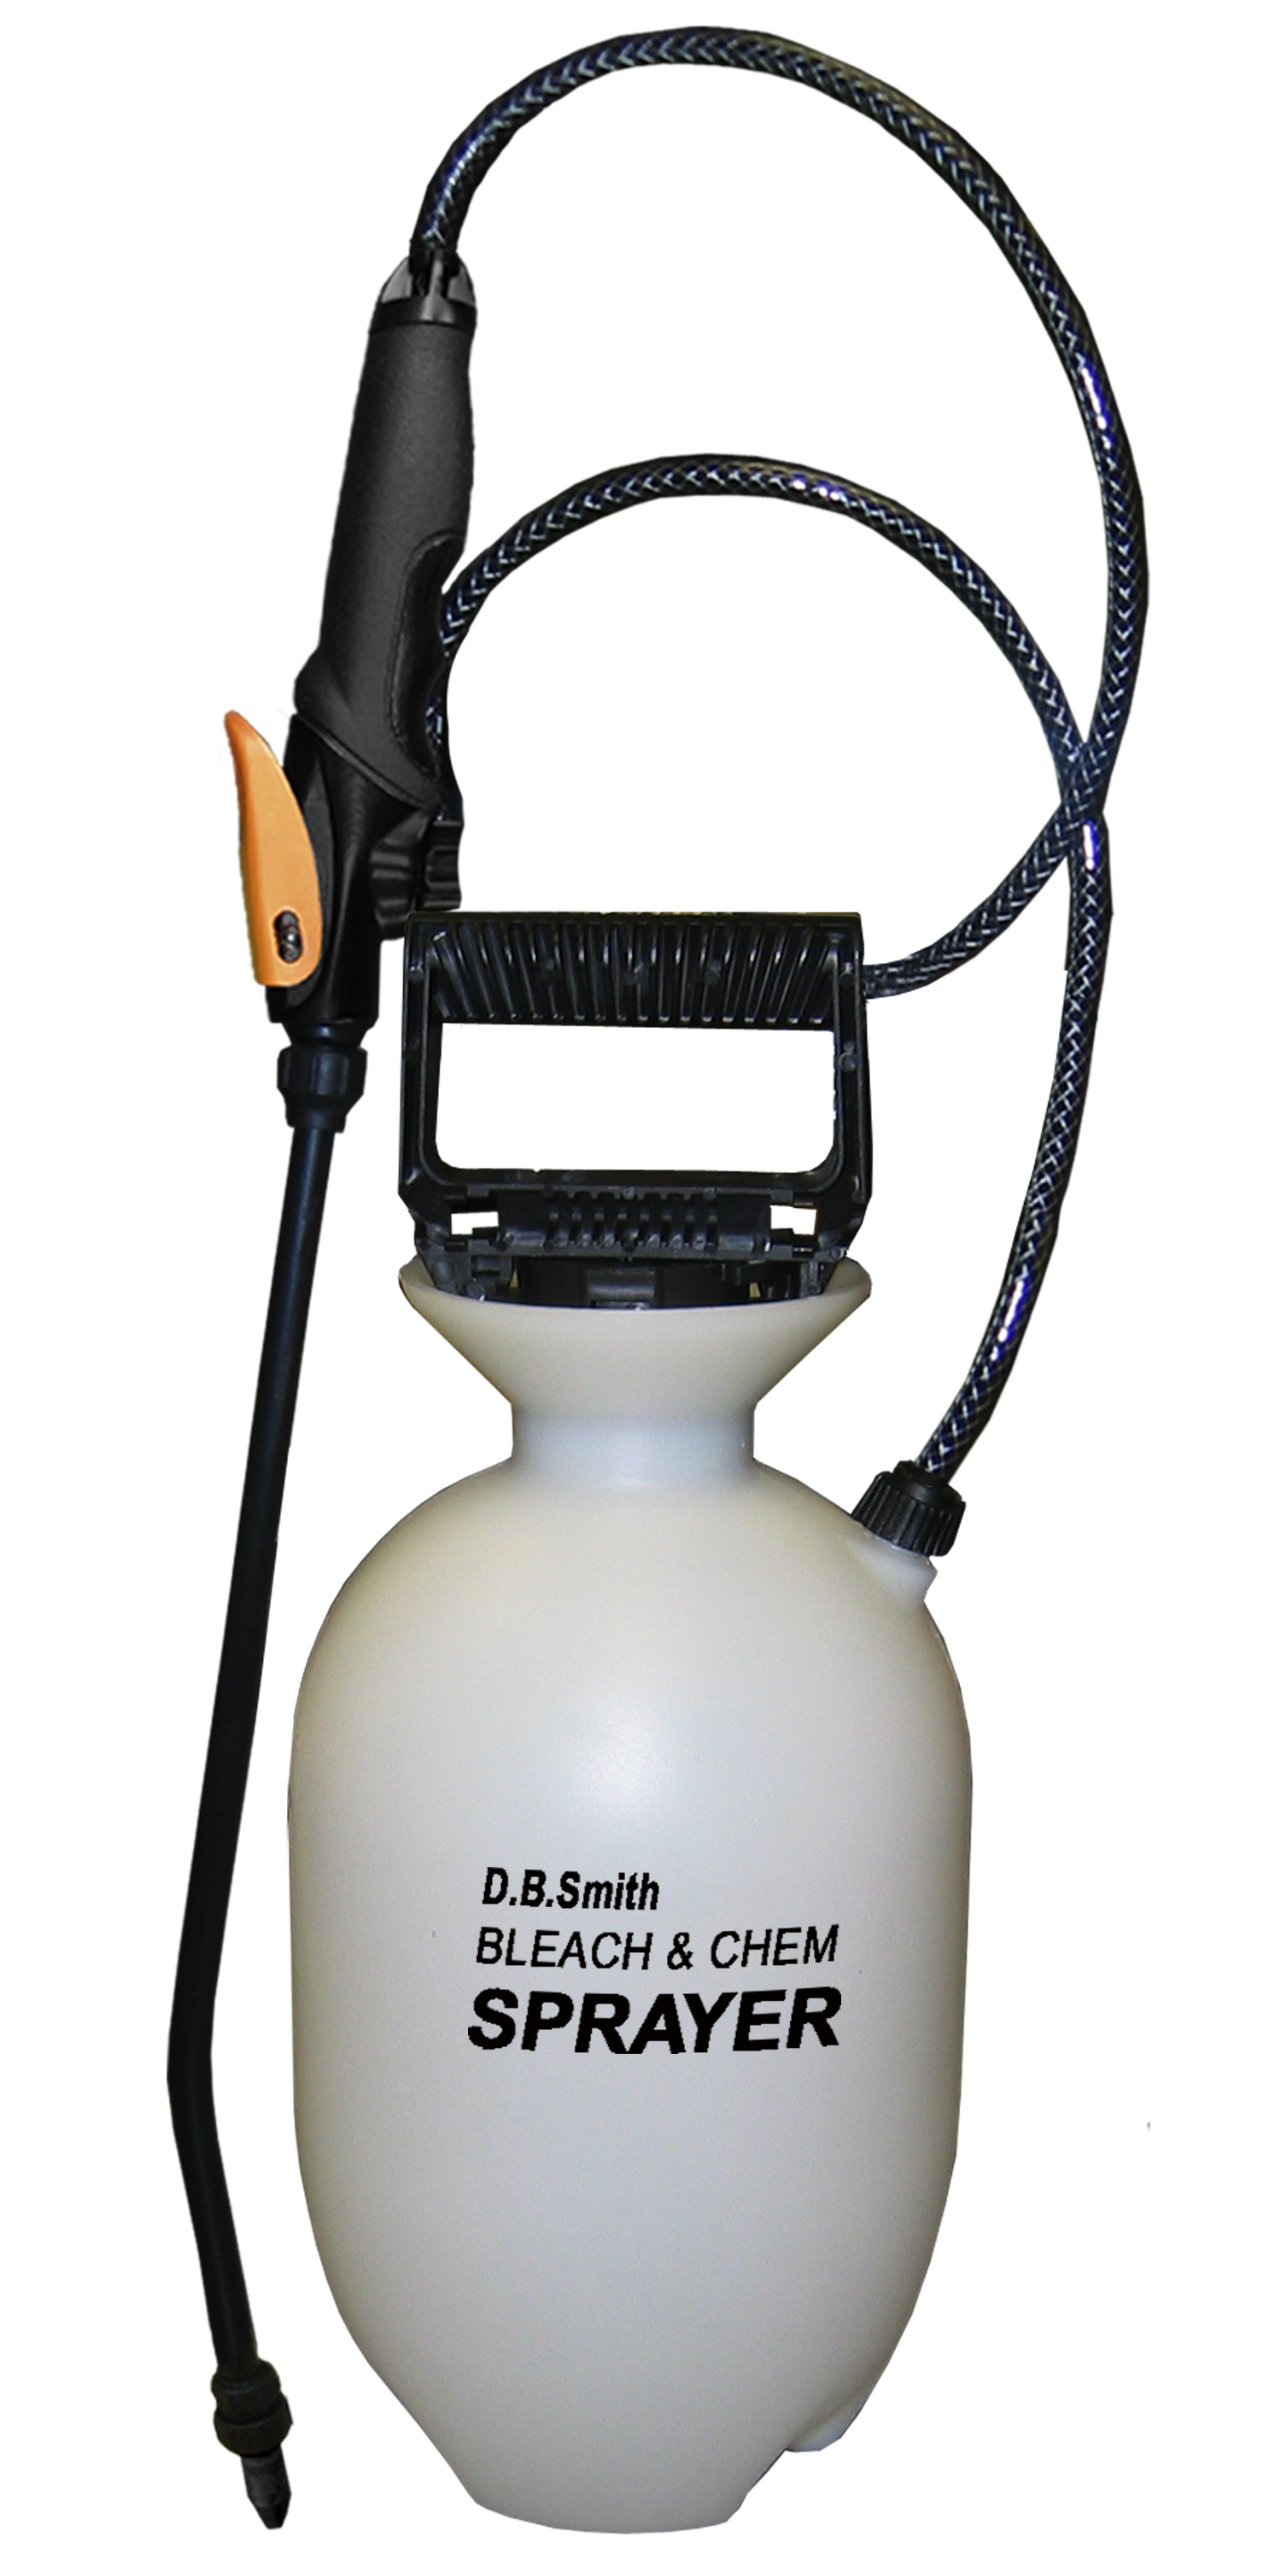 Smith 190285 1-Gallon Bleach And Chemical Sprayer For Lawns And Gardens Or Cl.. 6